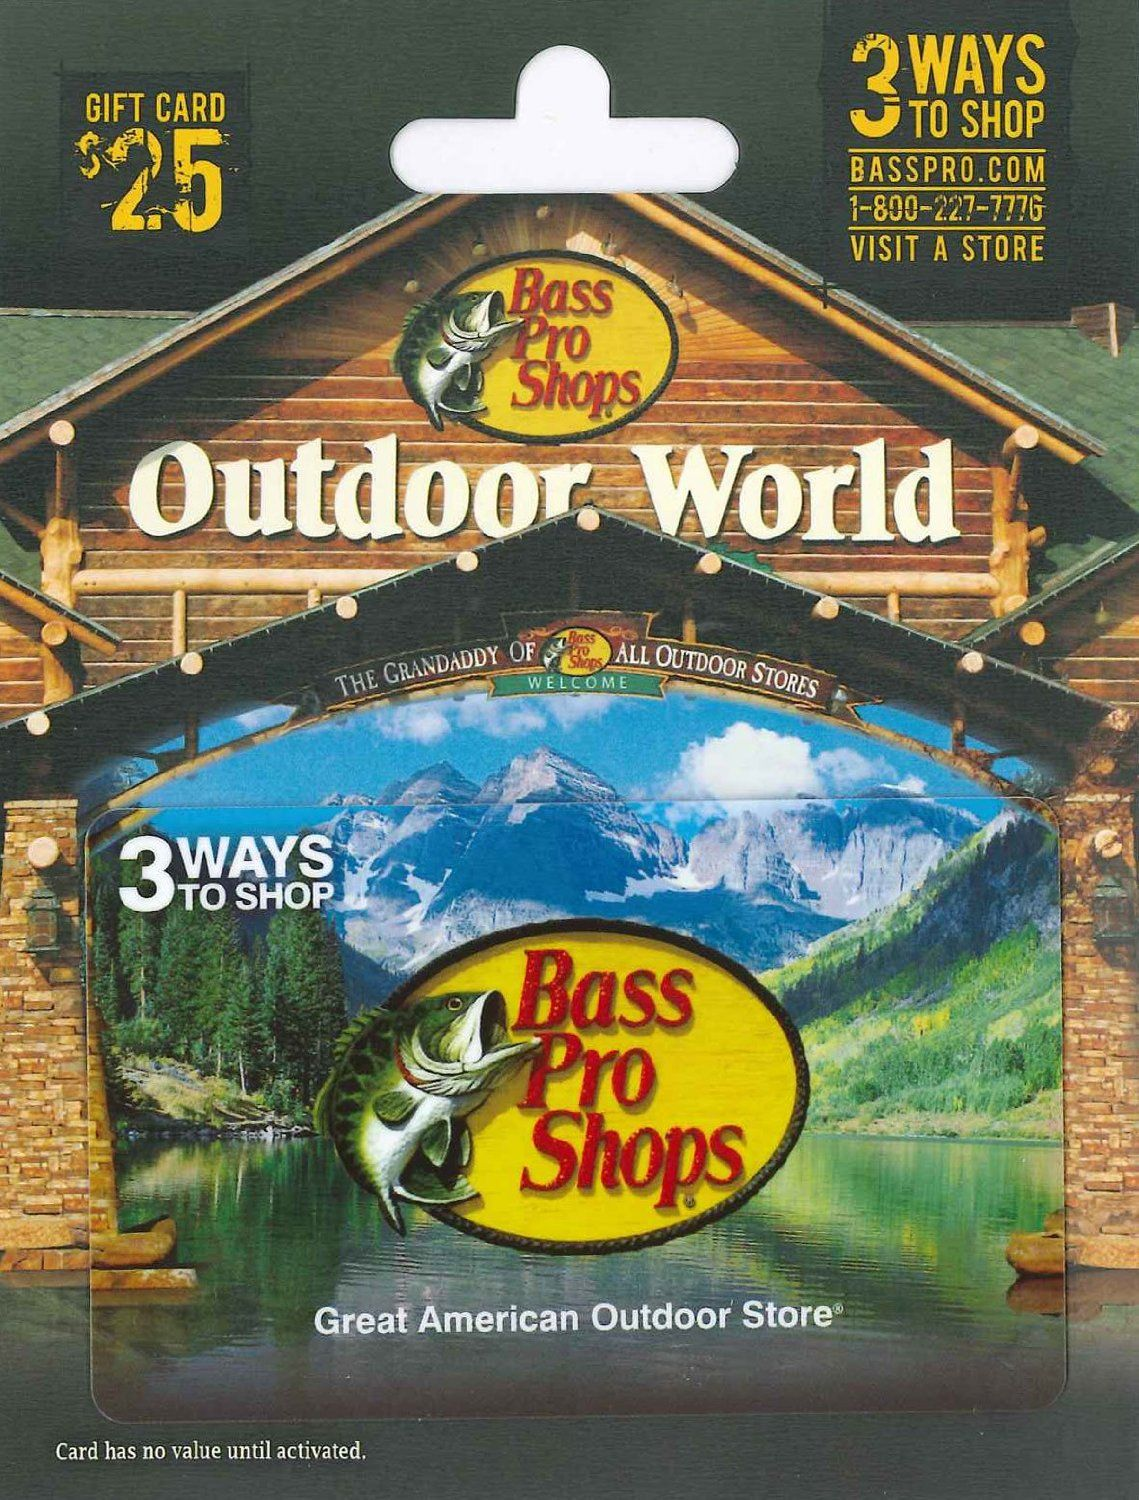 Amazon.com: Bass Pro Shops Gift Card $25: Gift Cards Store | Mixed ...